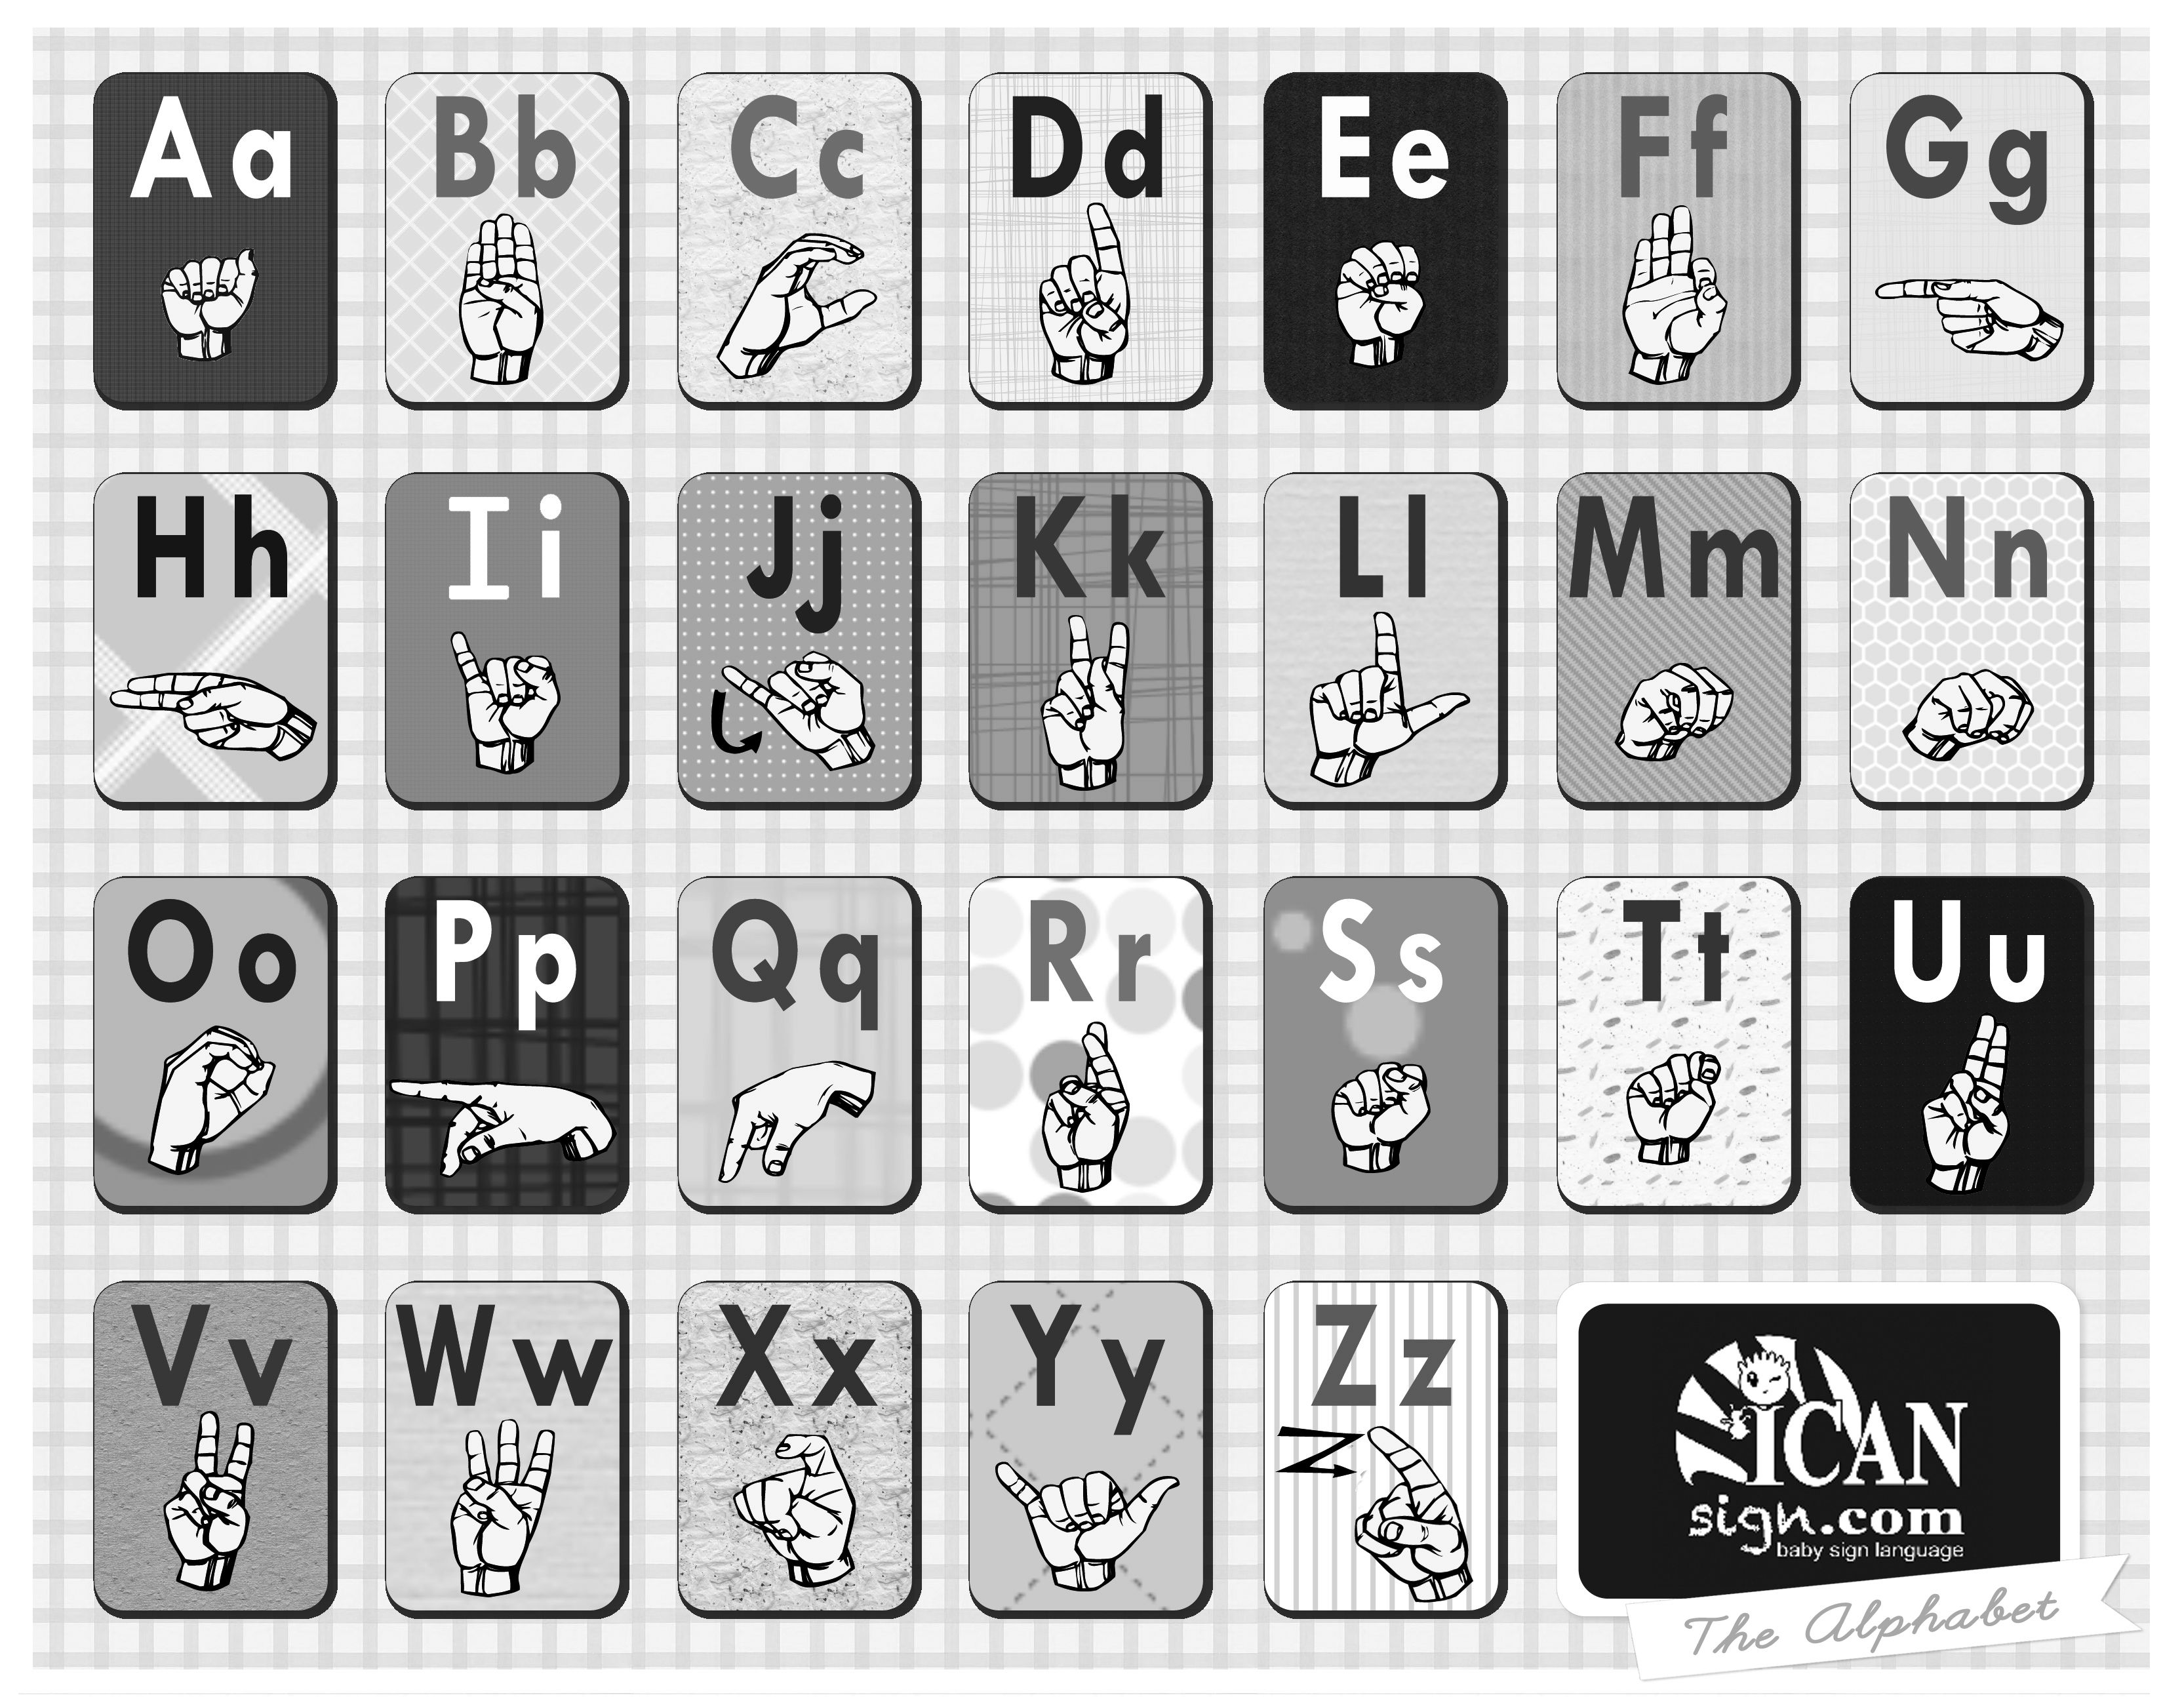 Pin By Icansign On Sign Language Charts